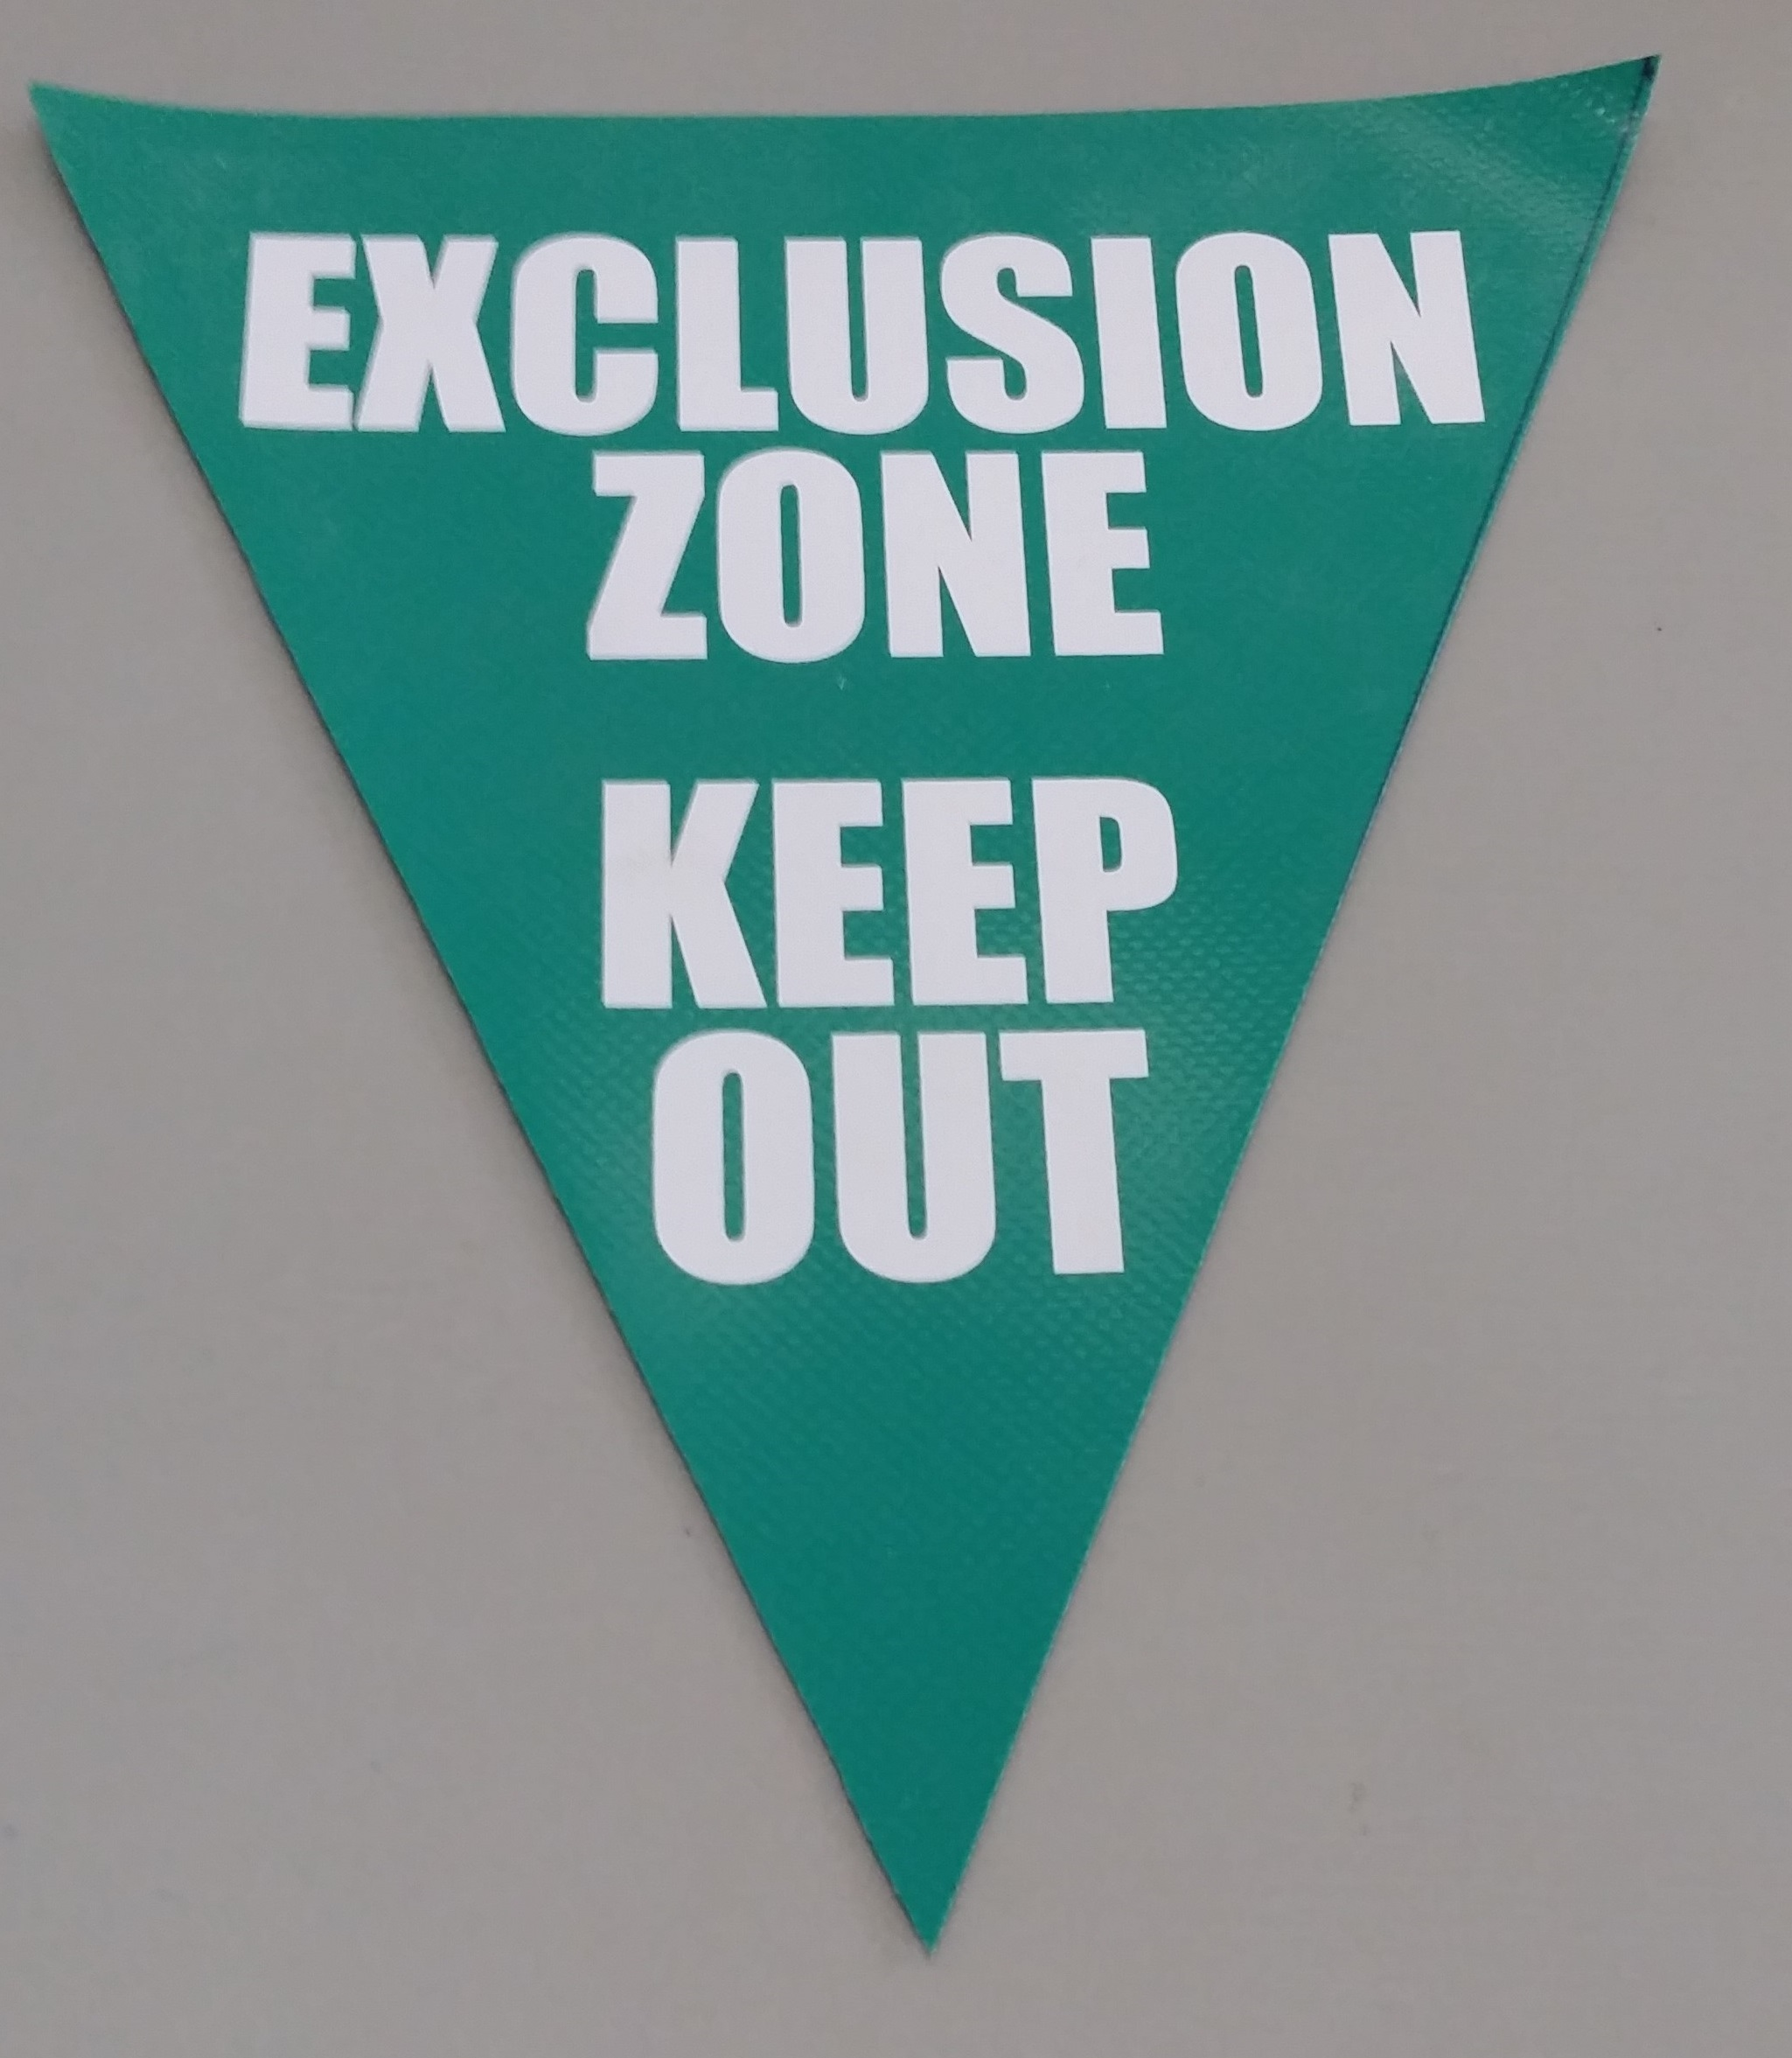 Exclusion Zone Keep Out (green with white print)